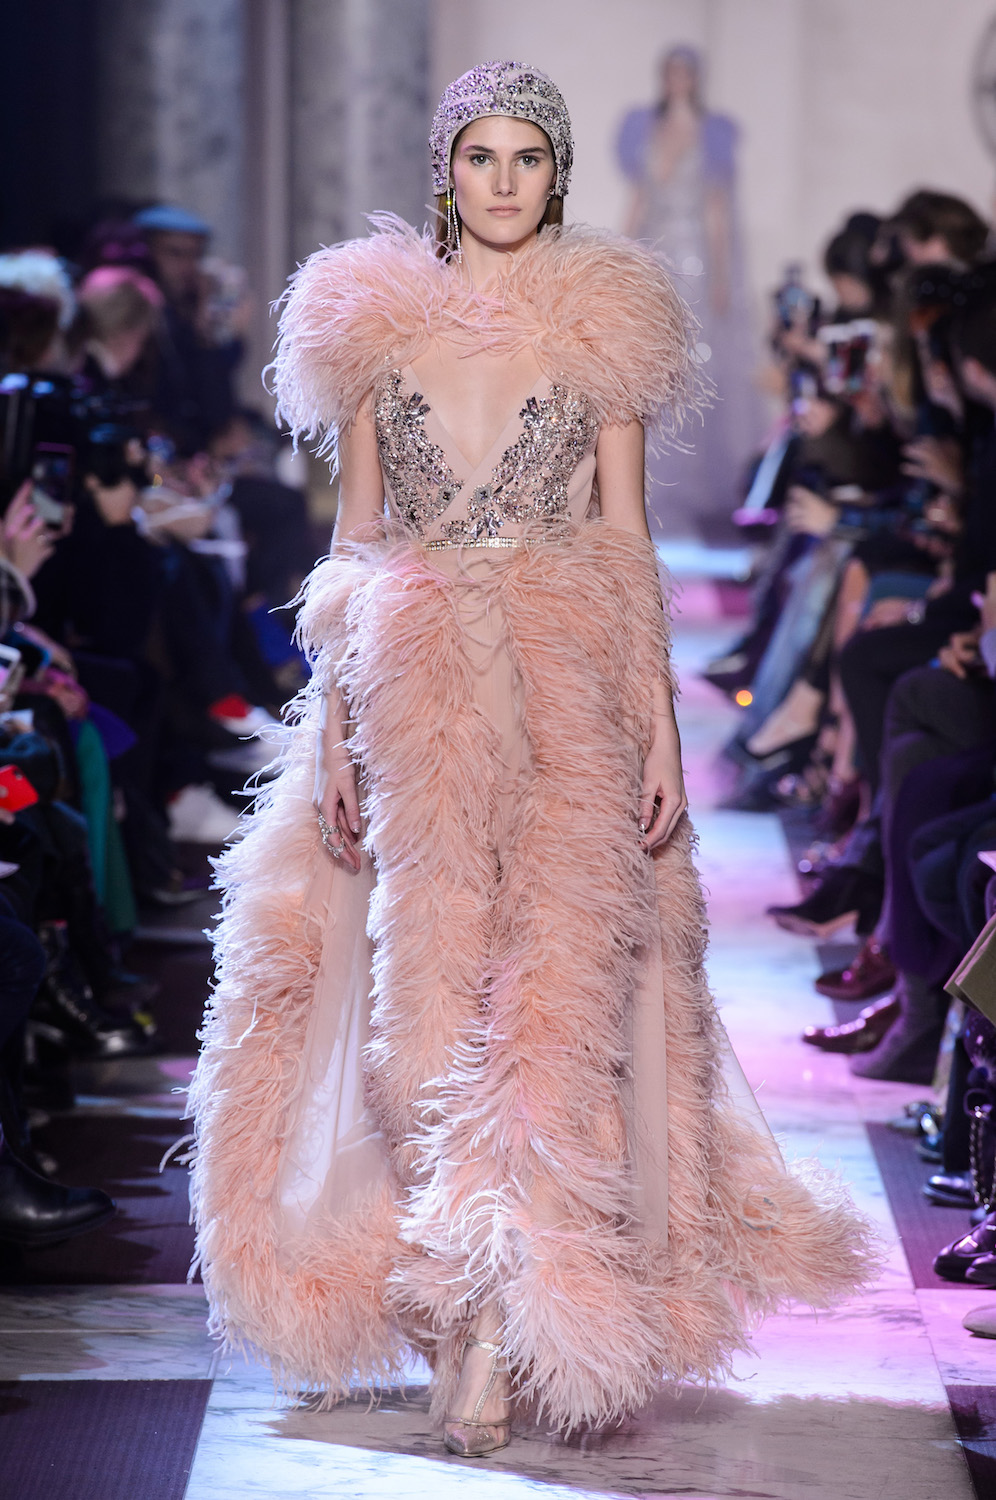 Elie Saab's Dazzling Ode to Paris in the 1920s for Spring 2018 Couture